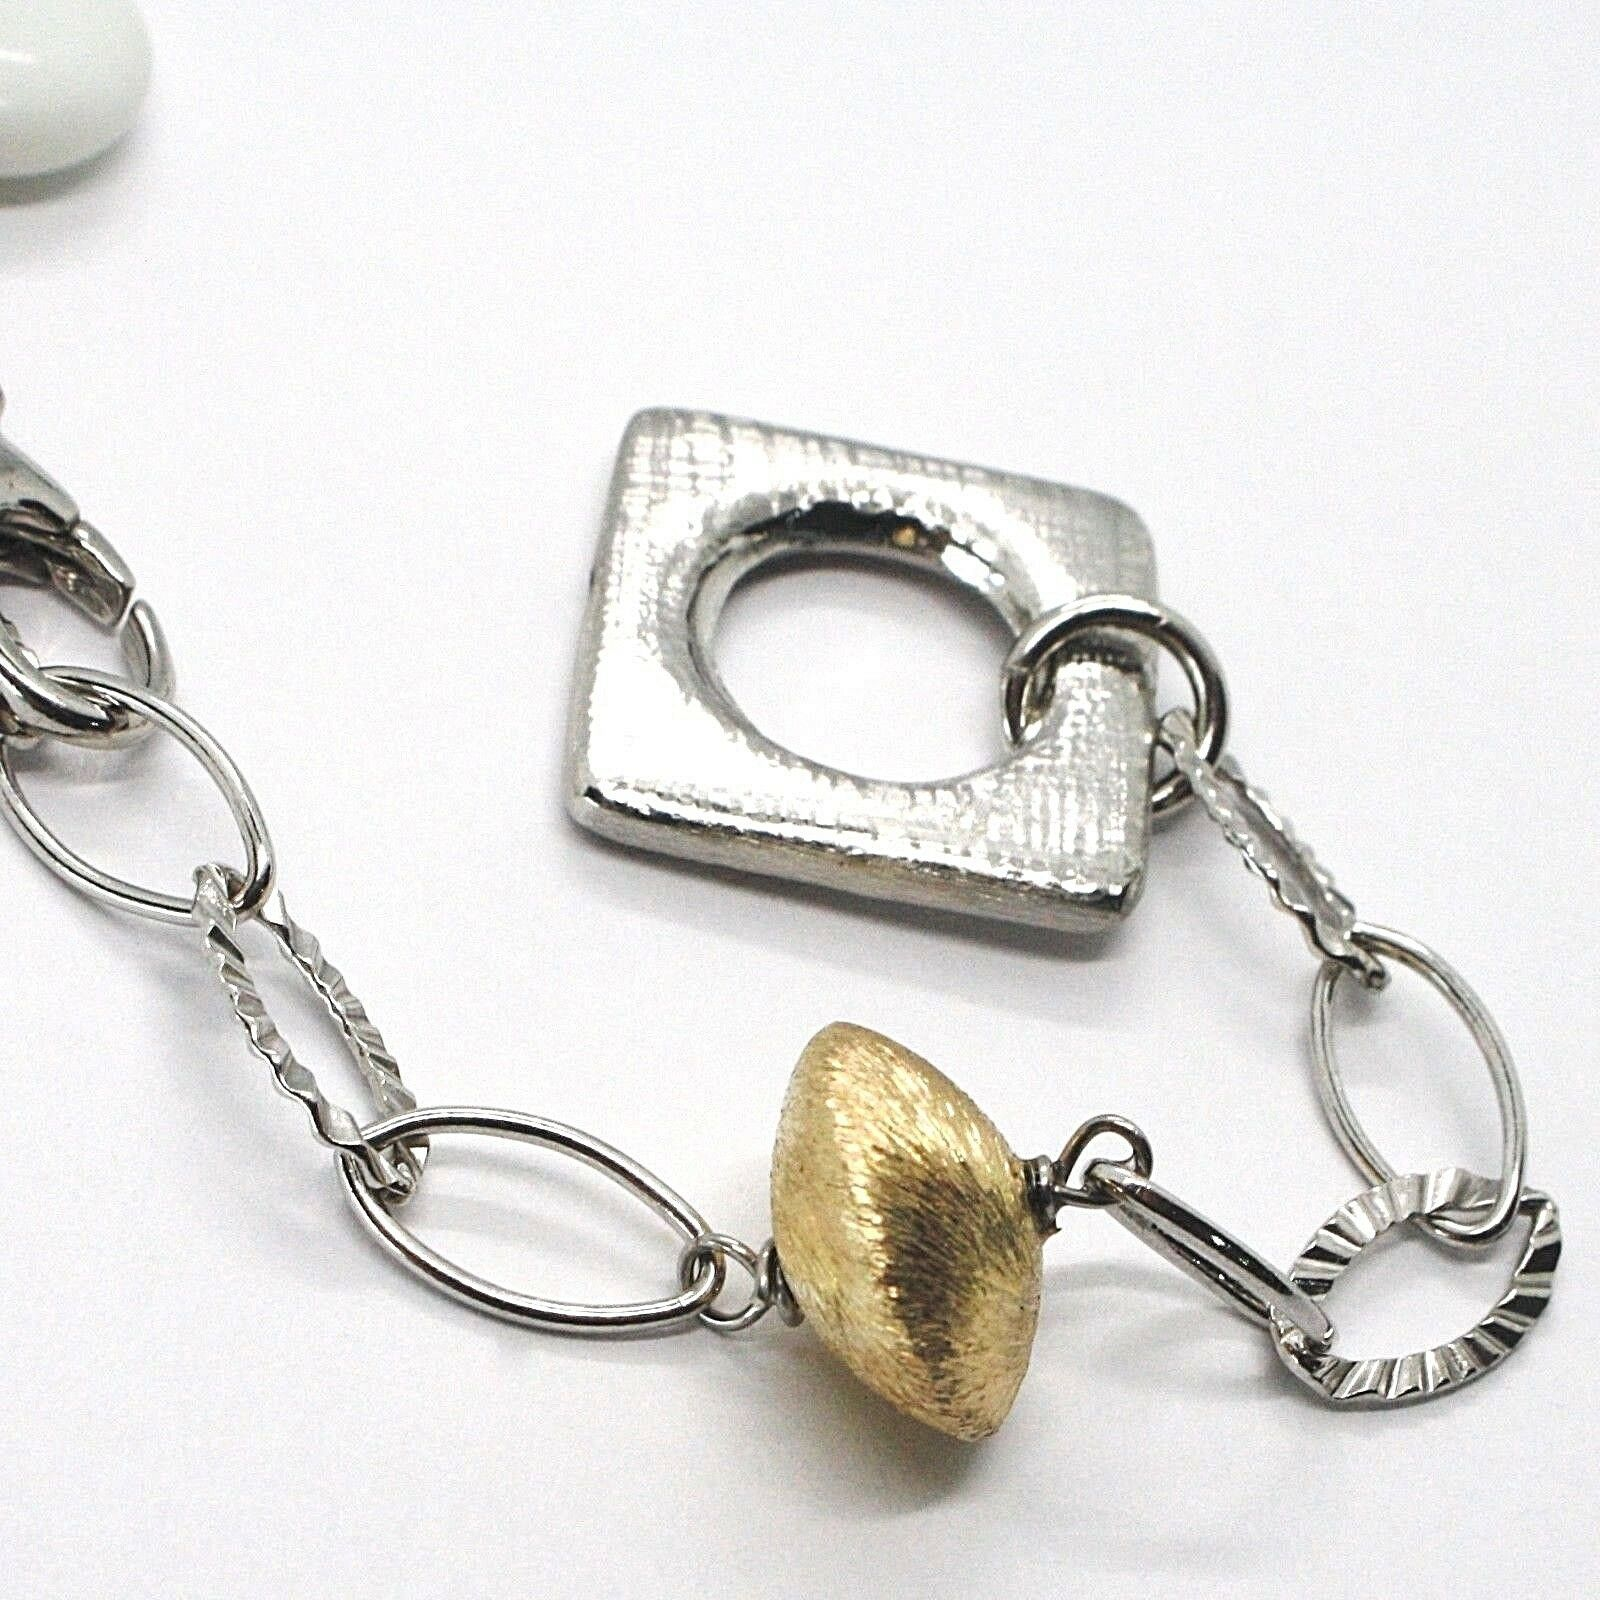 SILVER 925 NECKLACE, AGATE WHITE, SQUARE PENDANT, CHAIN OVALS WORKED image 3